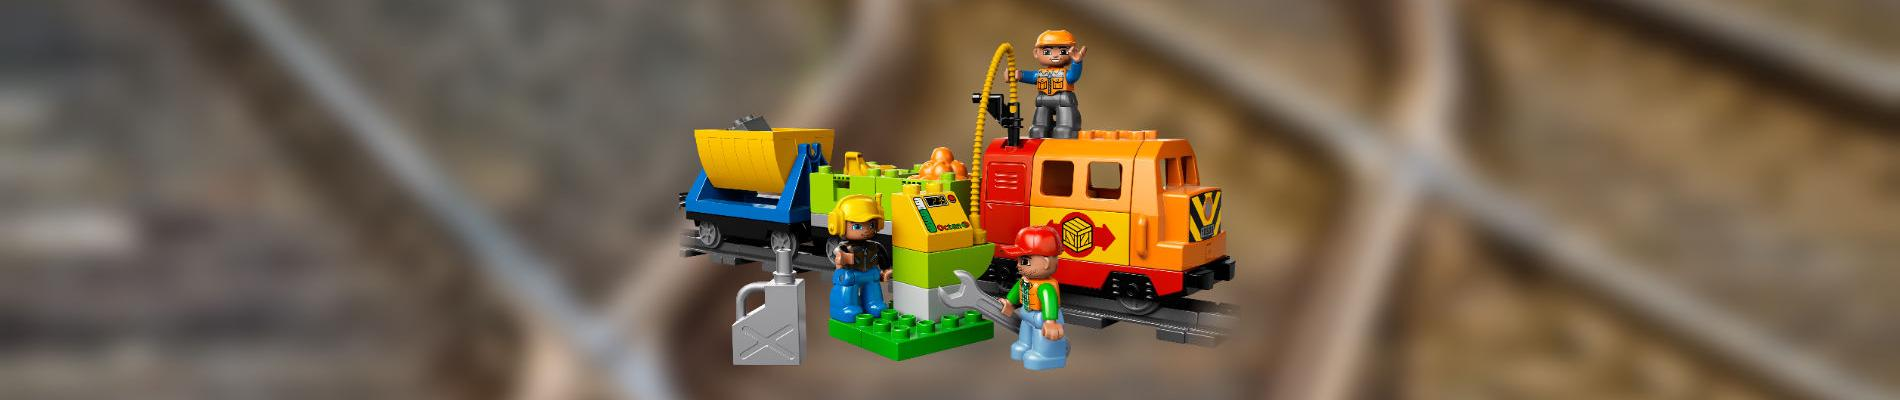 Repairing a Lego Duplo train engine from Delux train set